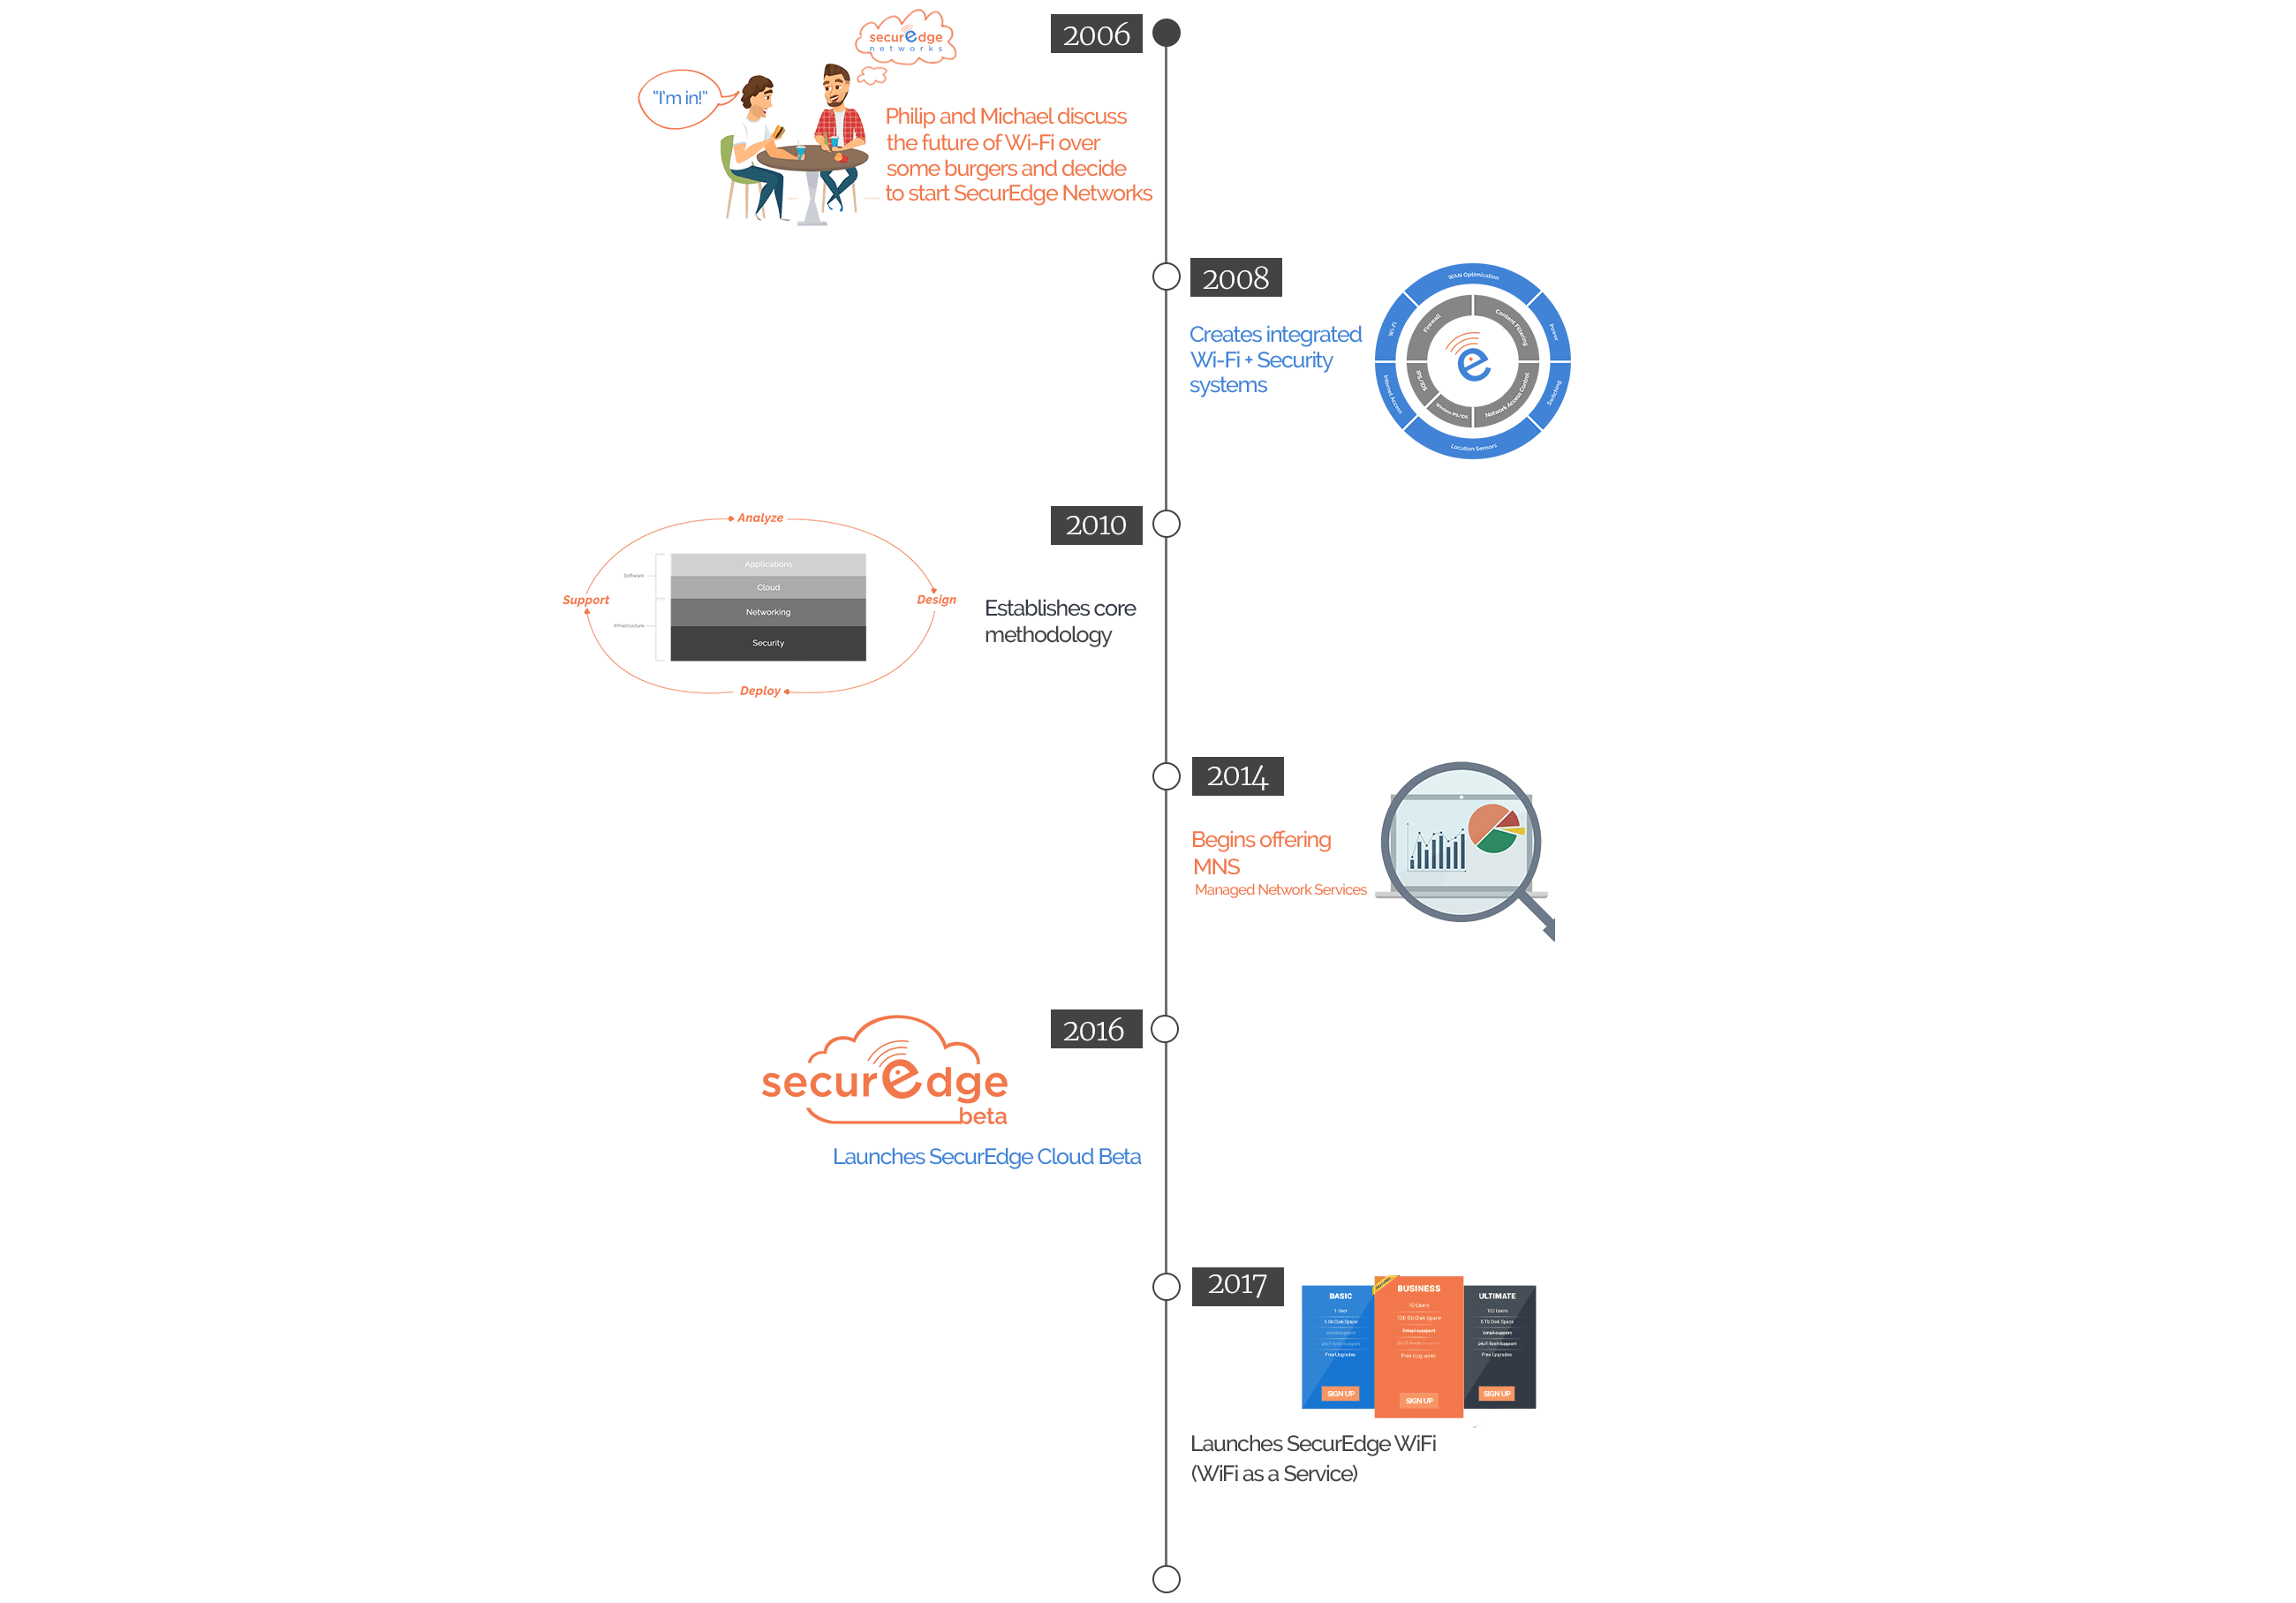 SecurEdge-Networks-About-Our-CompanyTimeline-2018.png